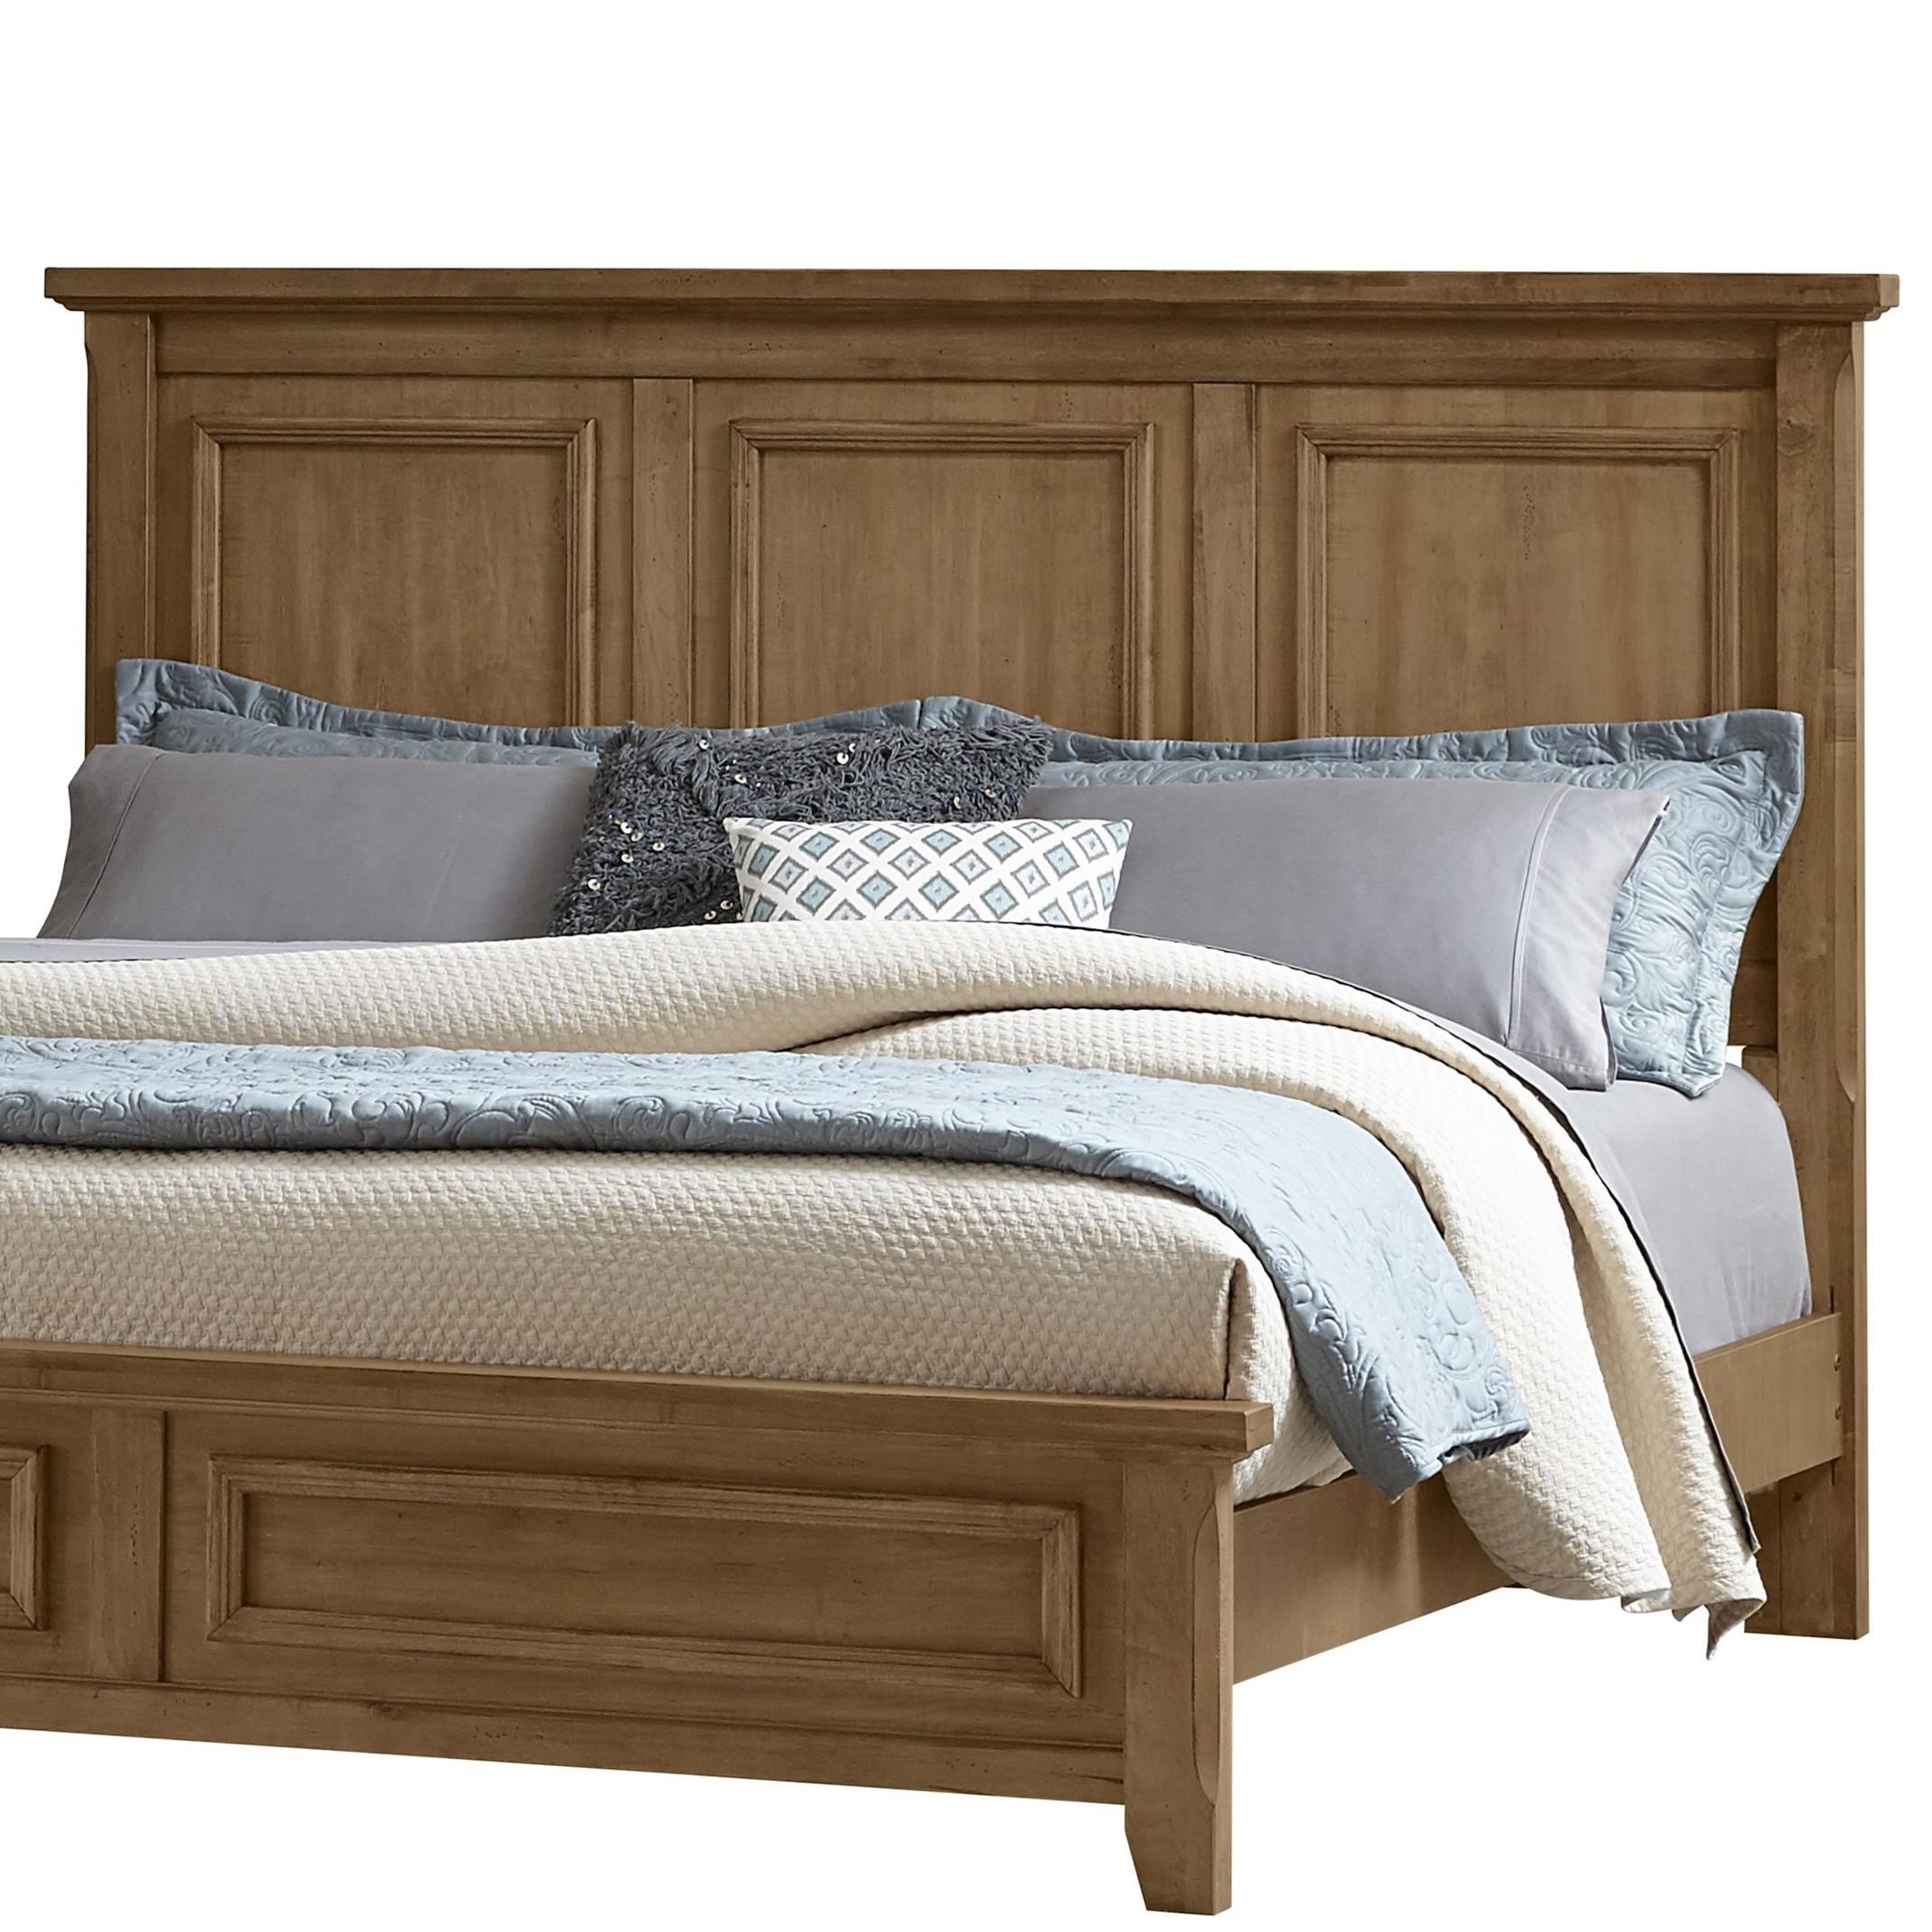 Vaughan Bassett Timber Creek King Mansion Headboard